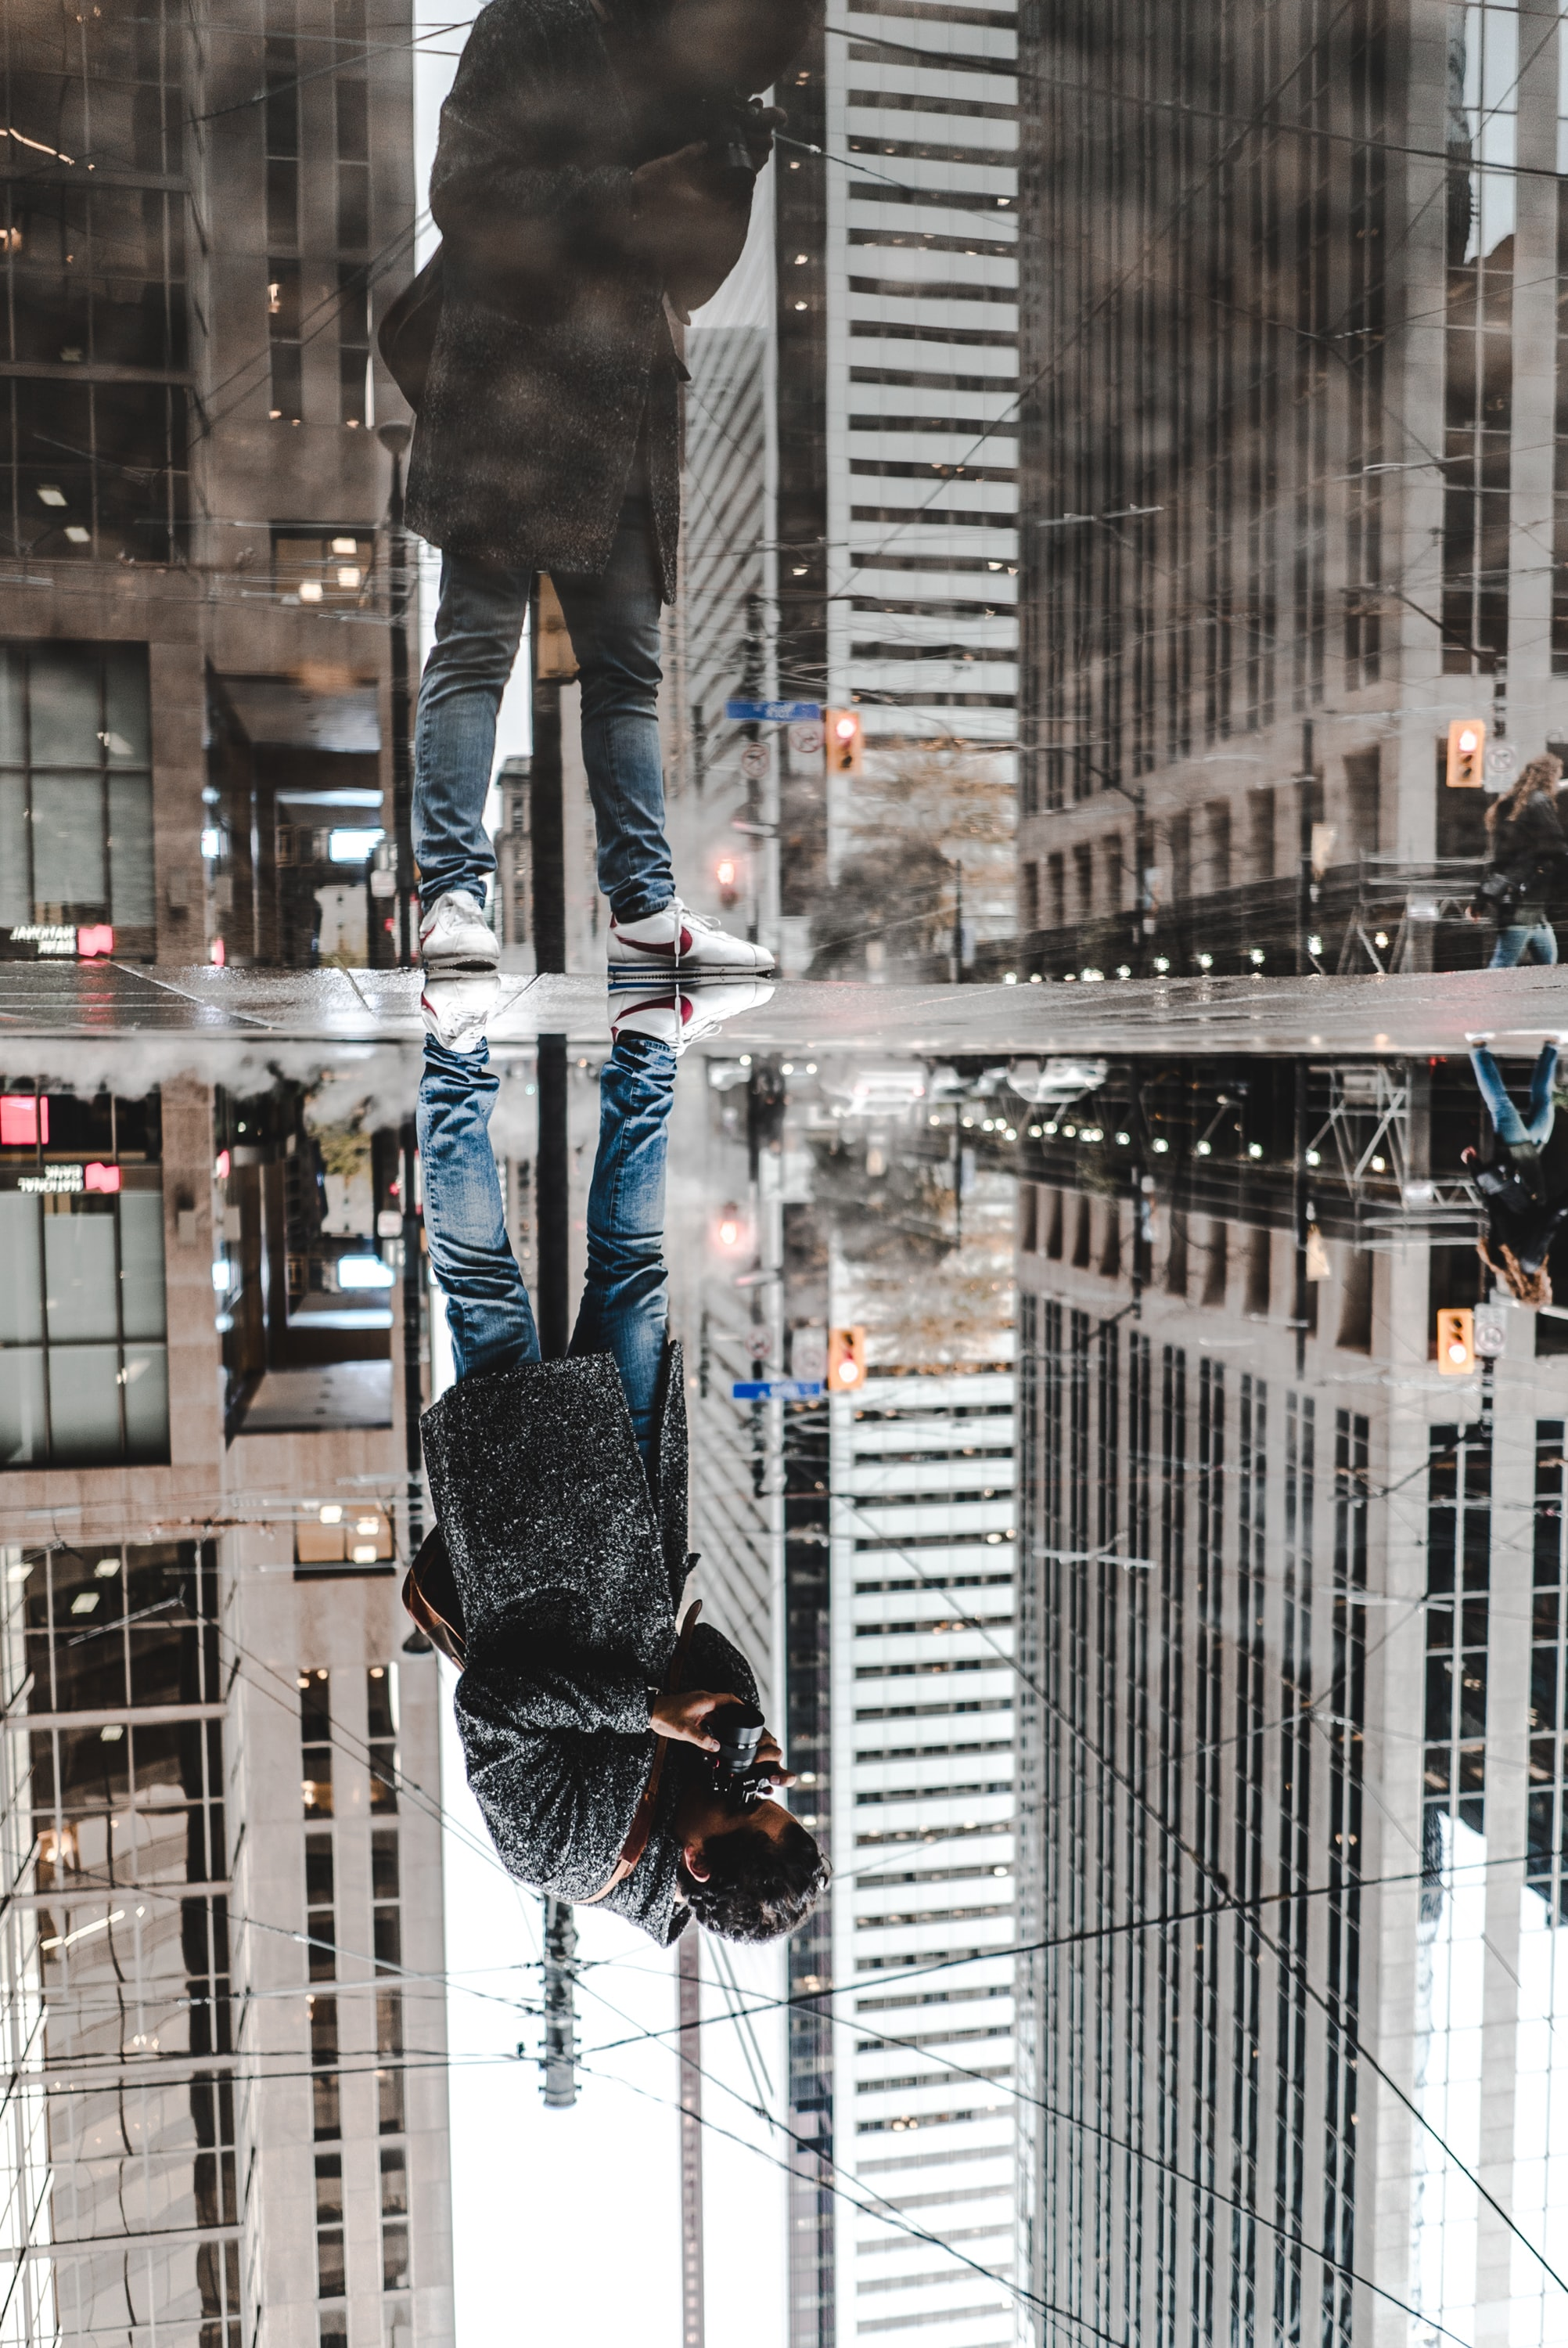 water mirror reflection photography of man standing on pavement front of buildings